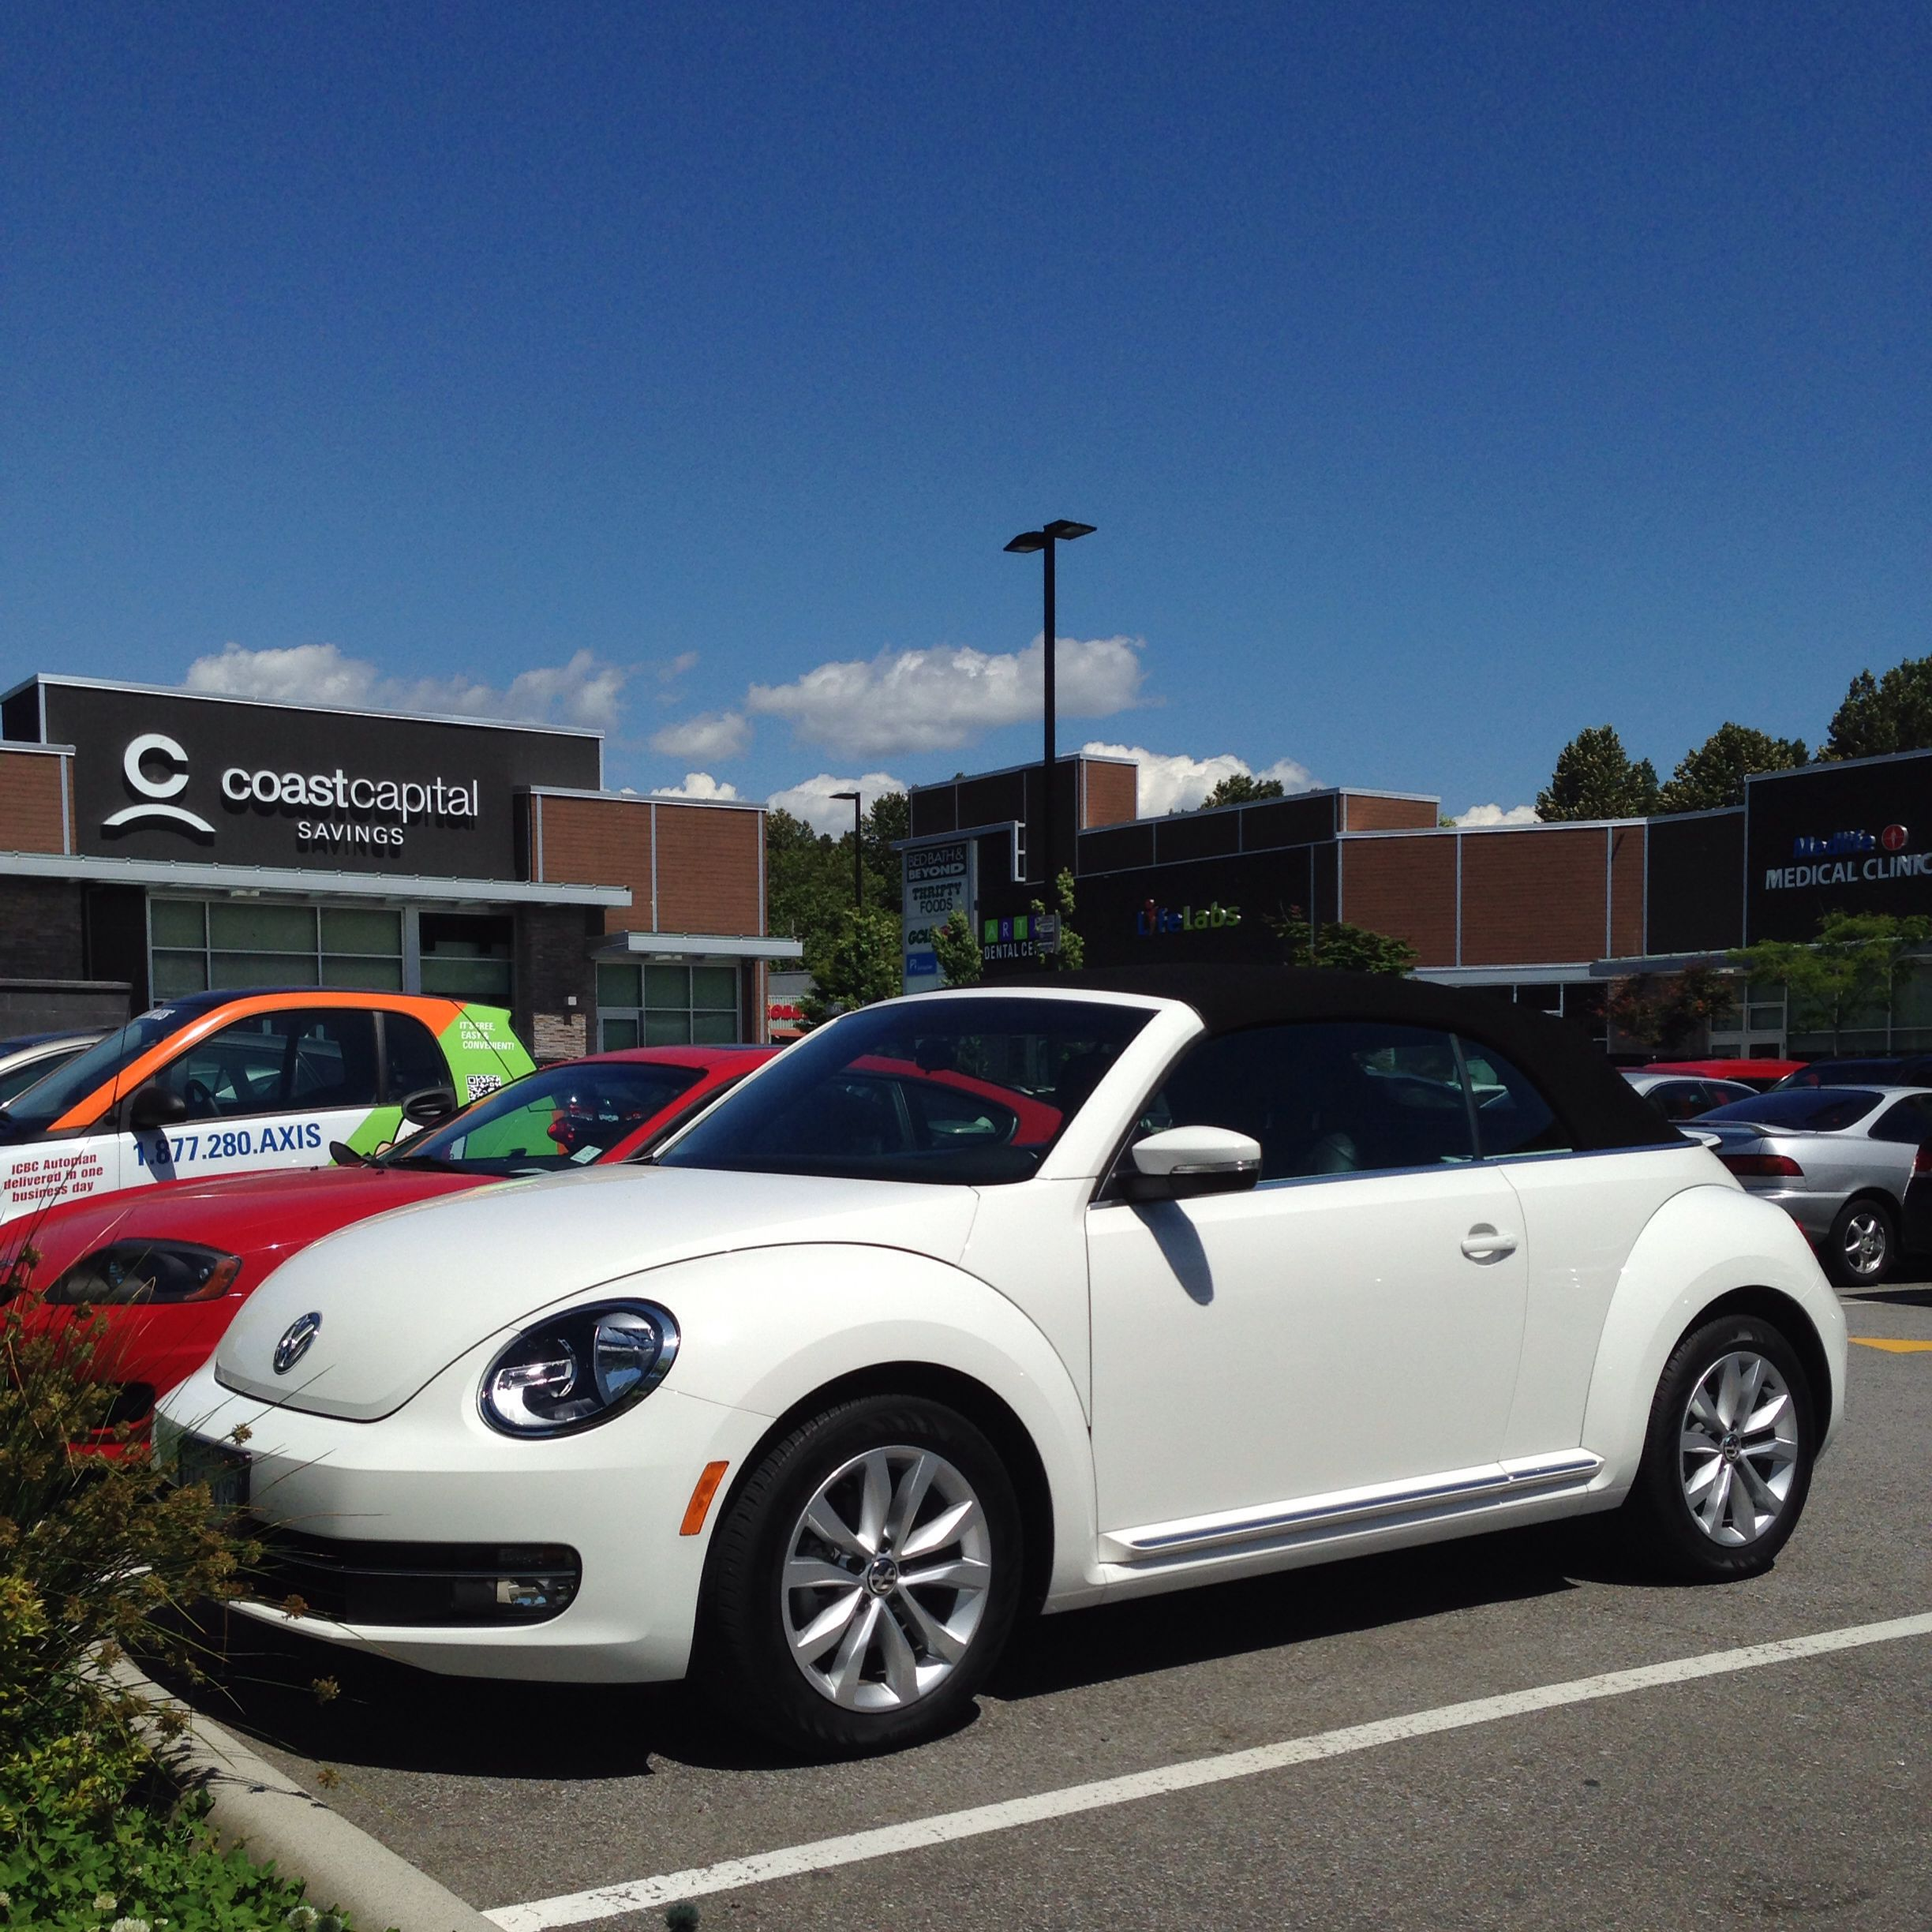 Nice Candy White VW Beetle Convertible spotted in Capilano